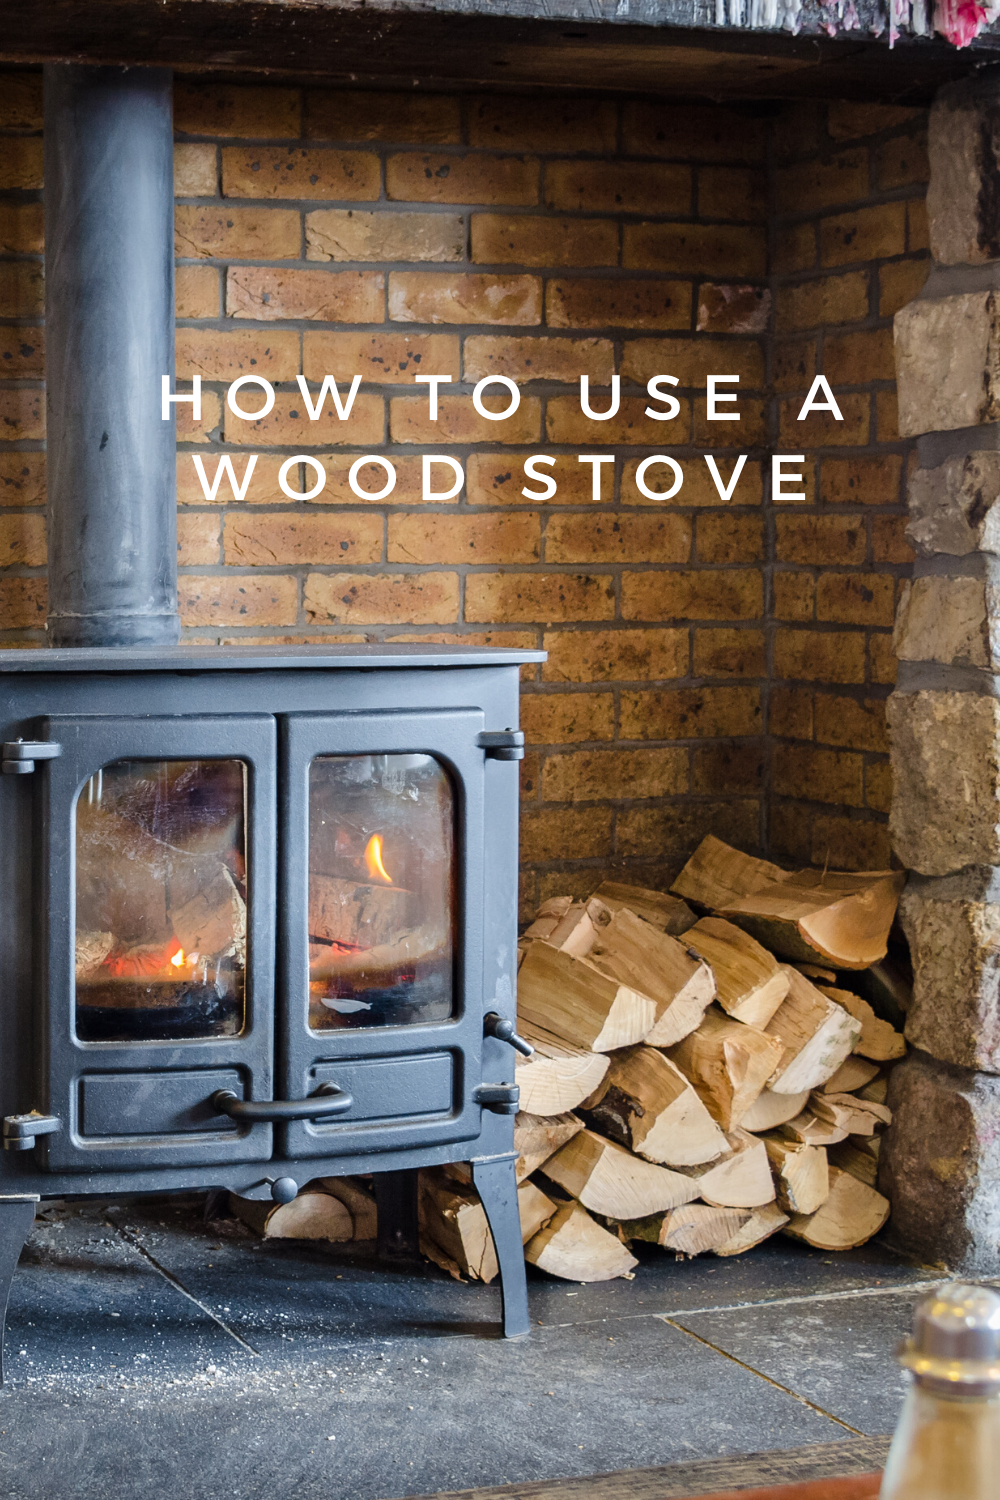 How To Use A Wood Burning Stove In 2020 Wood Burning Stove Wood Stove